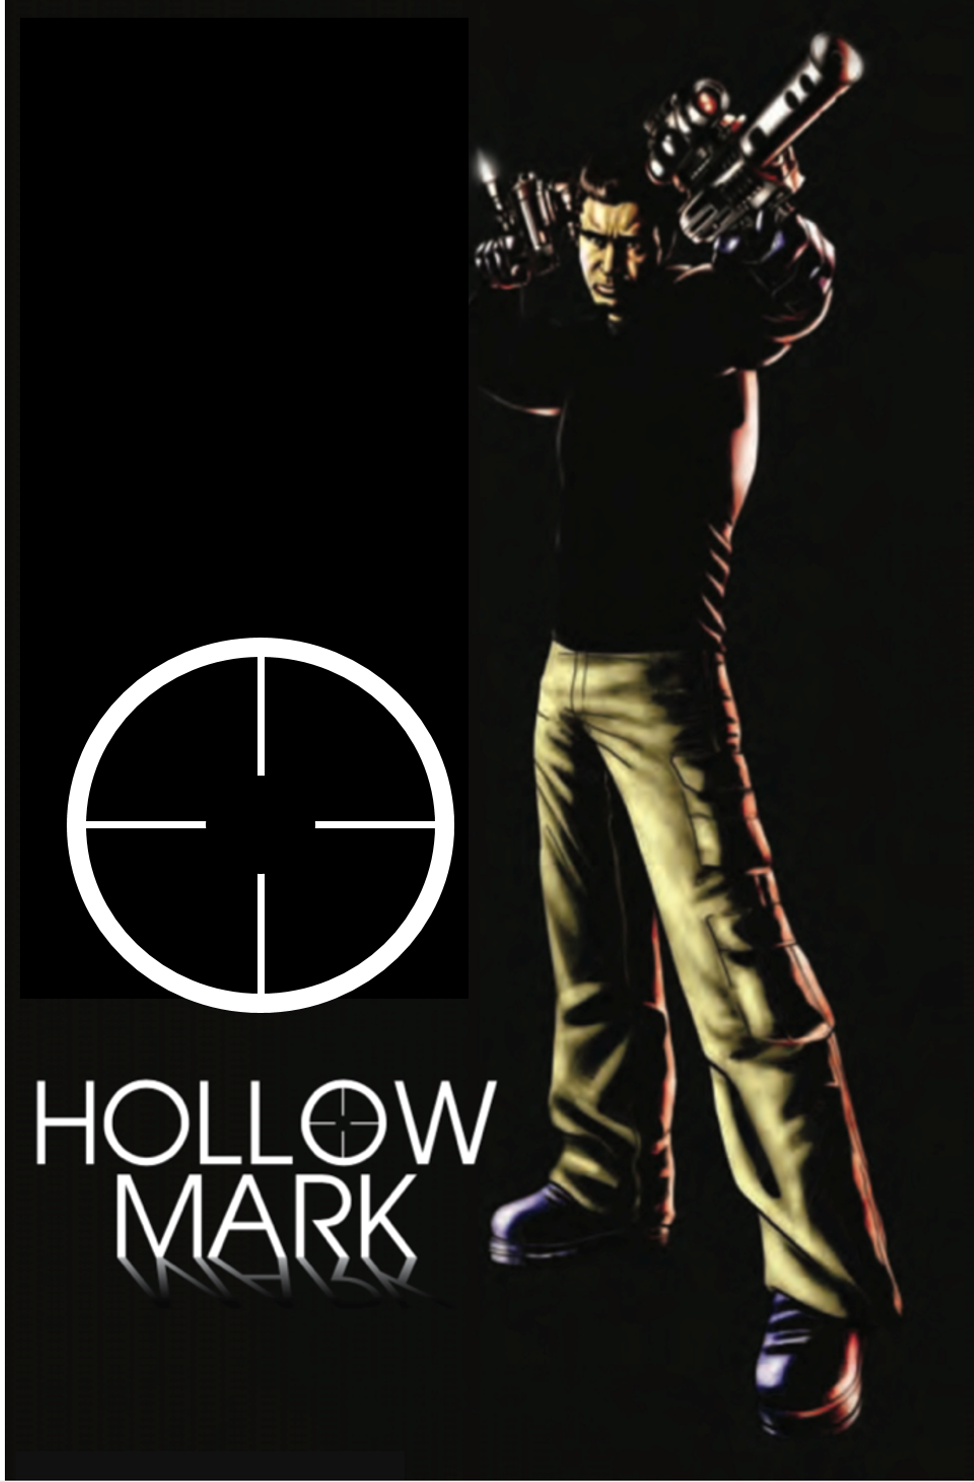 HOLLOW MARK